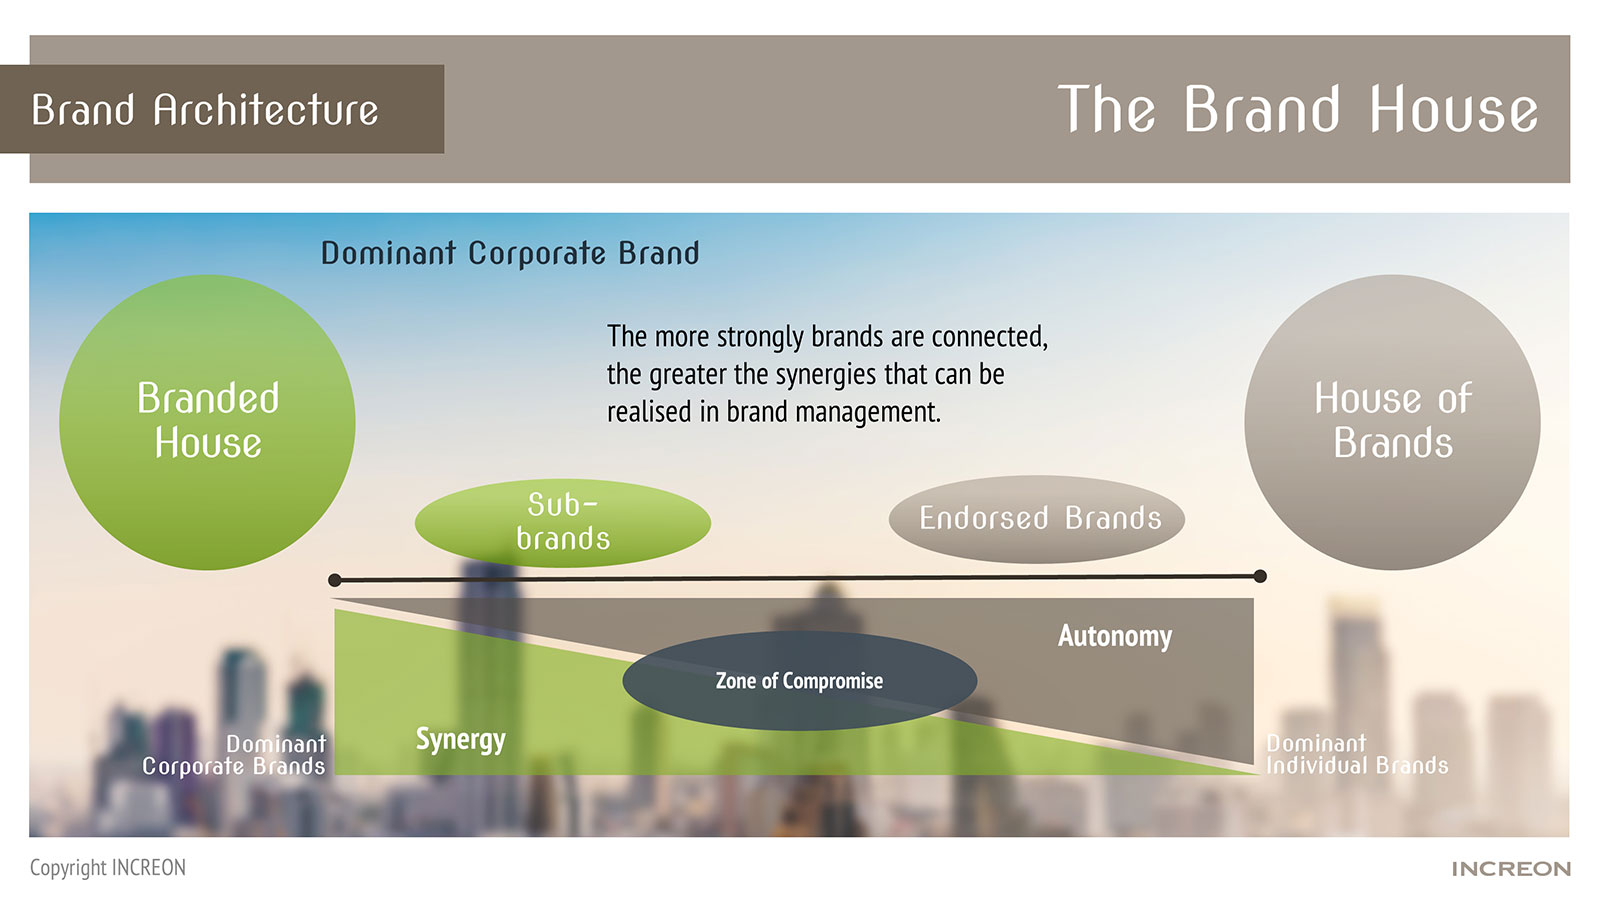 In the brand architecture, the strategic approach decides which synergies are able to be realized in brand management.